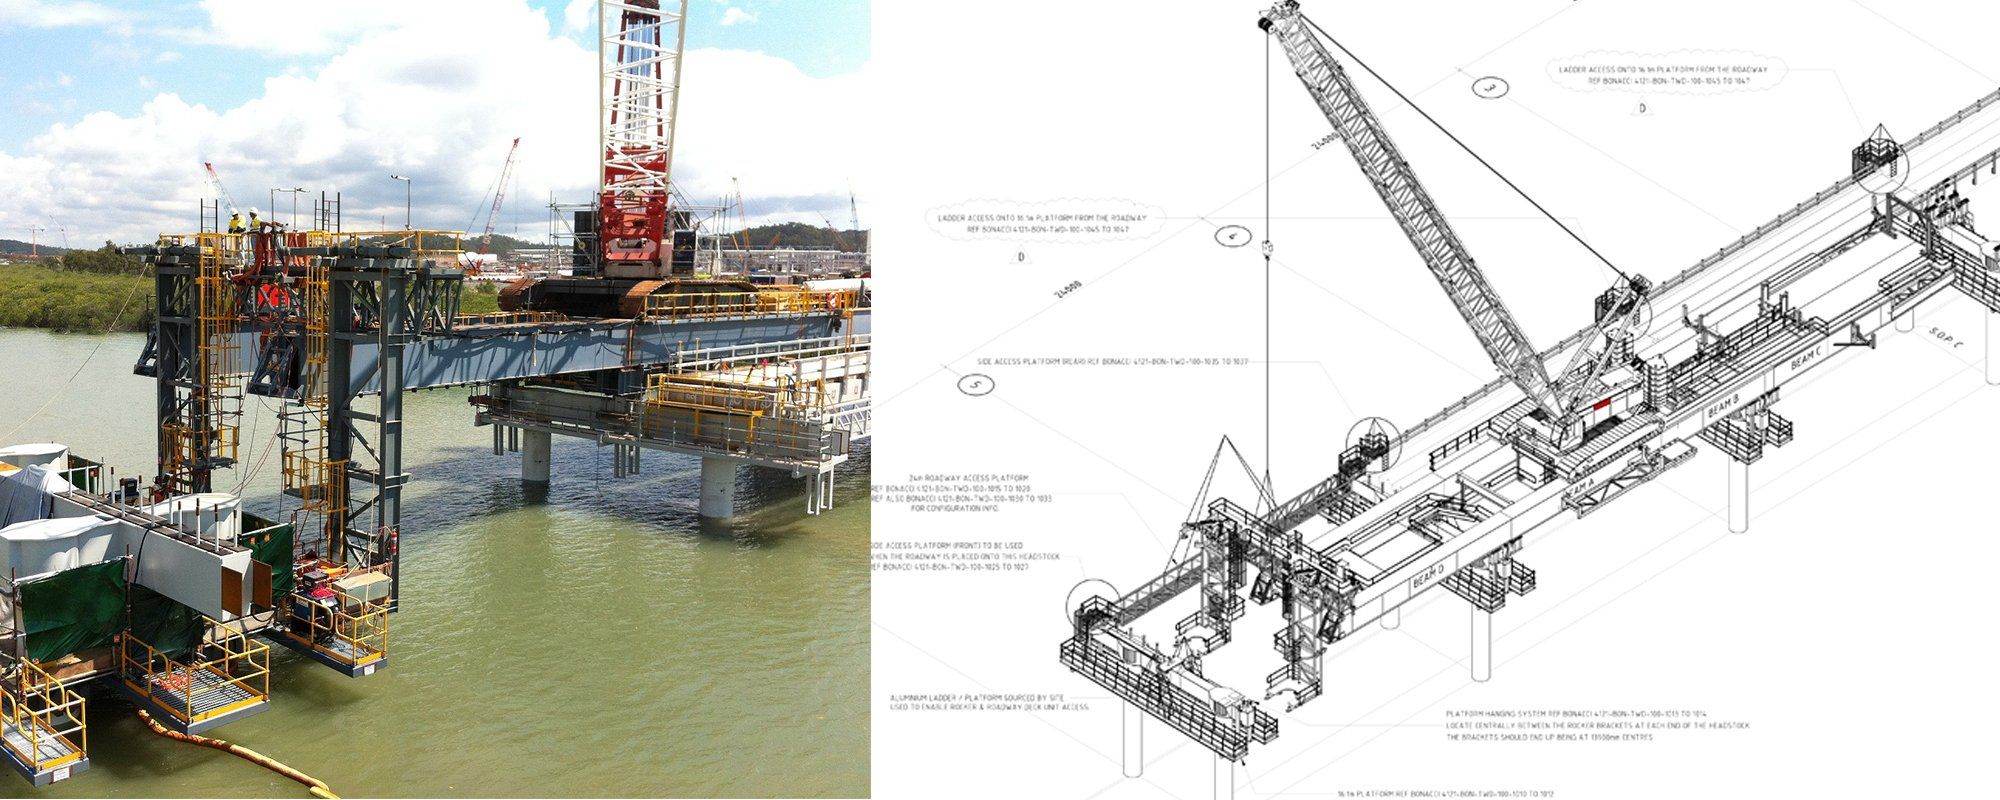 View of the design of teh project